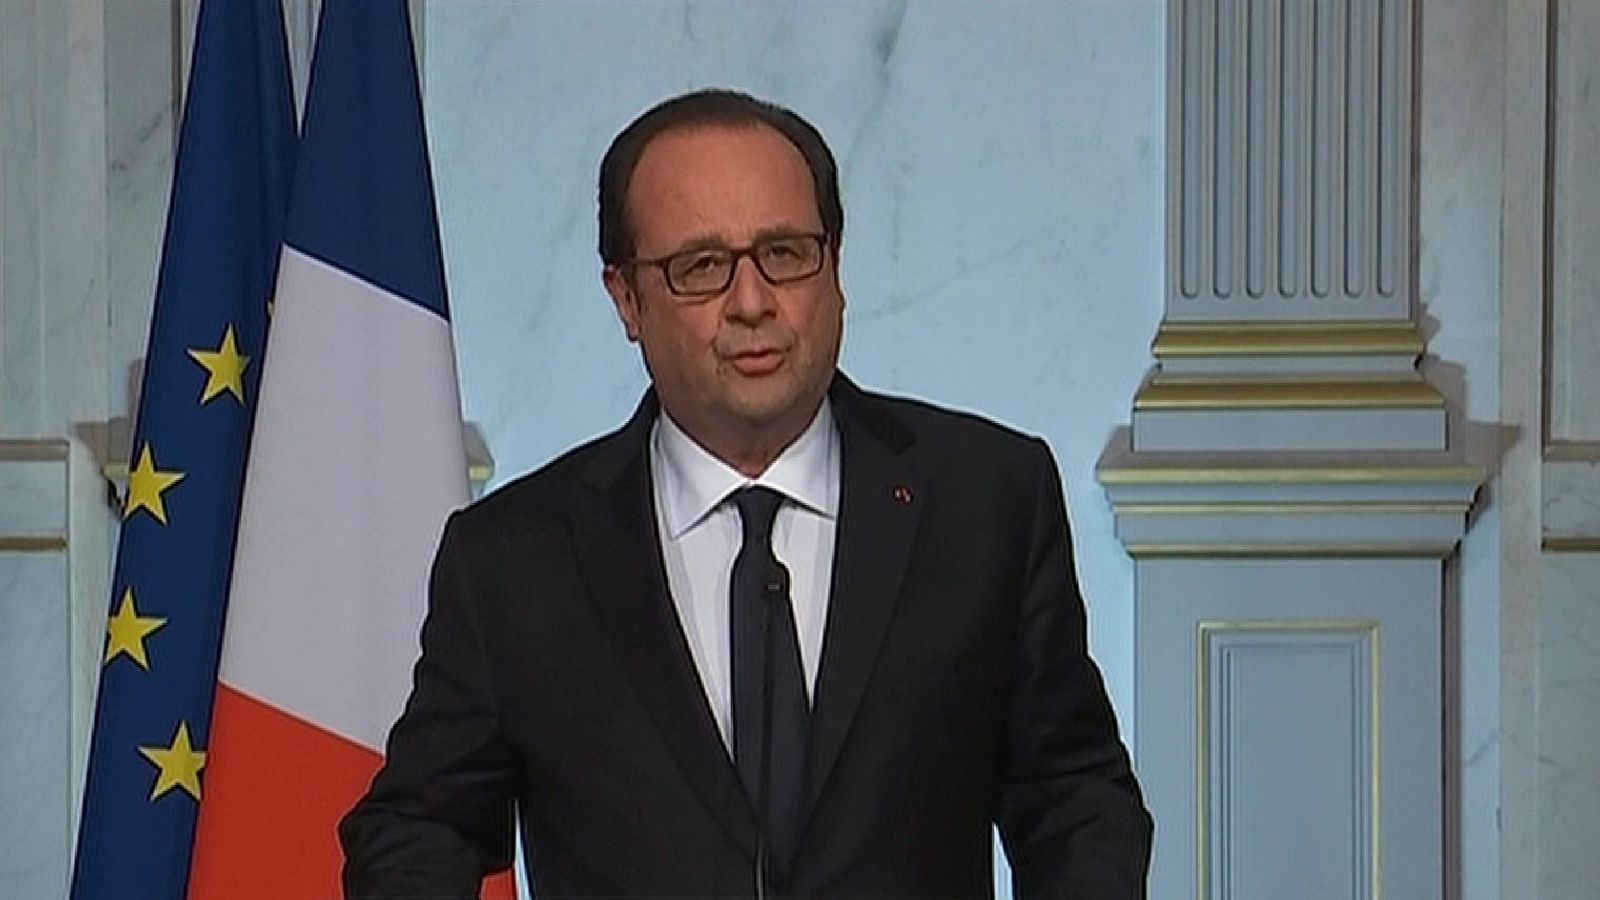 France's Hollande speaks about truck attack in Nice, France